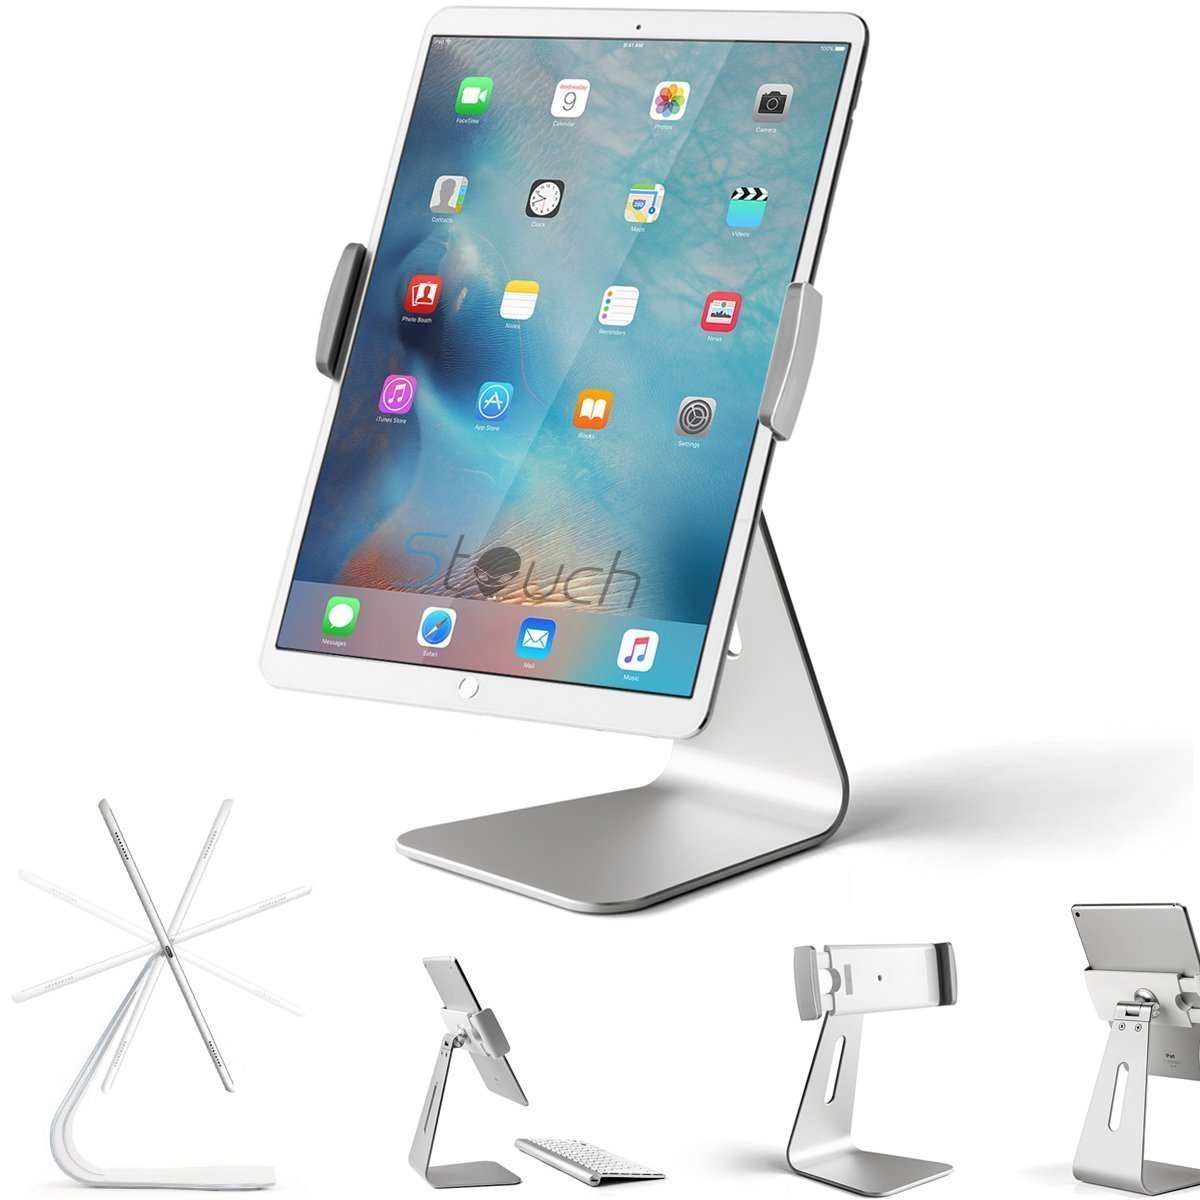 Stouch iPad Pro Tablet Holder Stand, 360° Rotatable Aluminum Alloy Desktop Holder Tablet Stand Compatible Samsung Galaxy Tab Pro S iPad Pro10.5 9.7'' 12.9'' iPad Air Surface Pro 4 Other Tablet